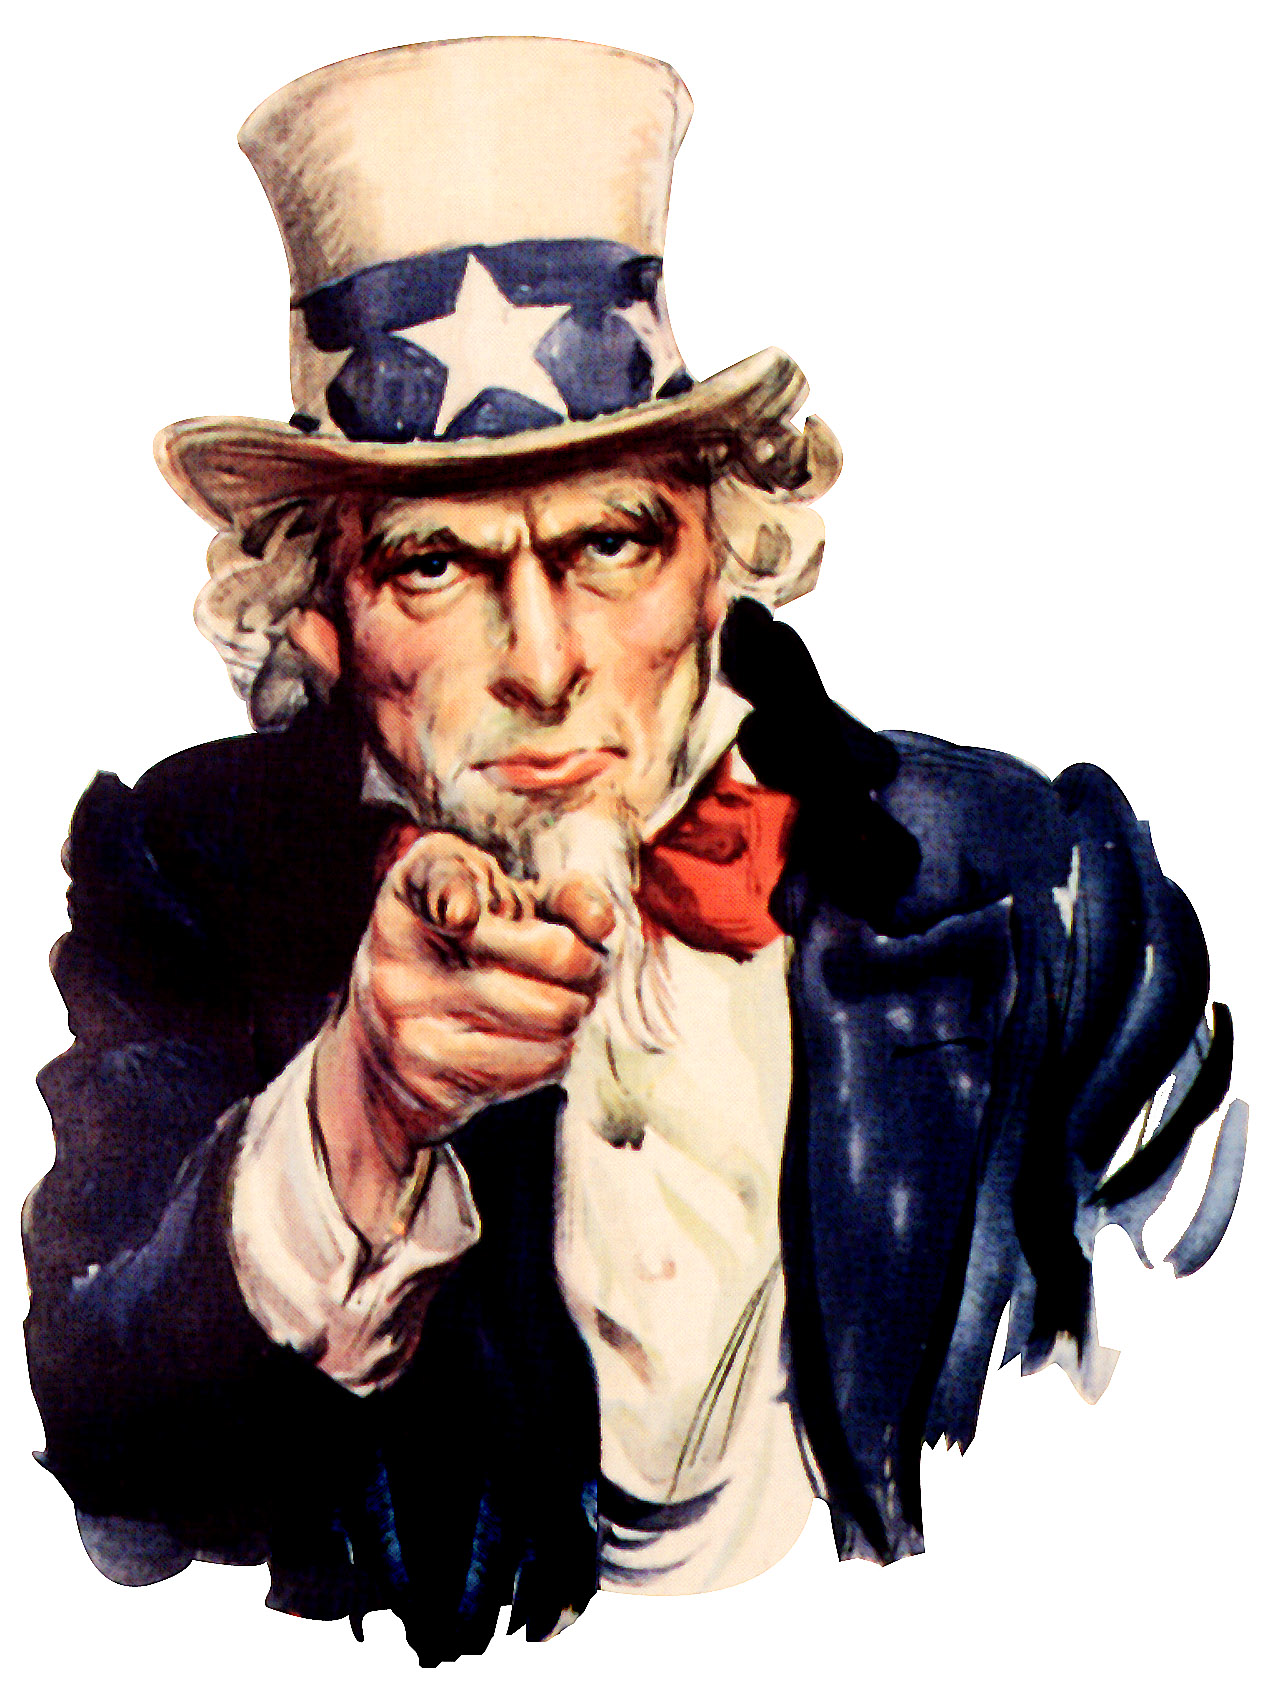 uncle sam pointing finger blank template imgflip